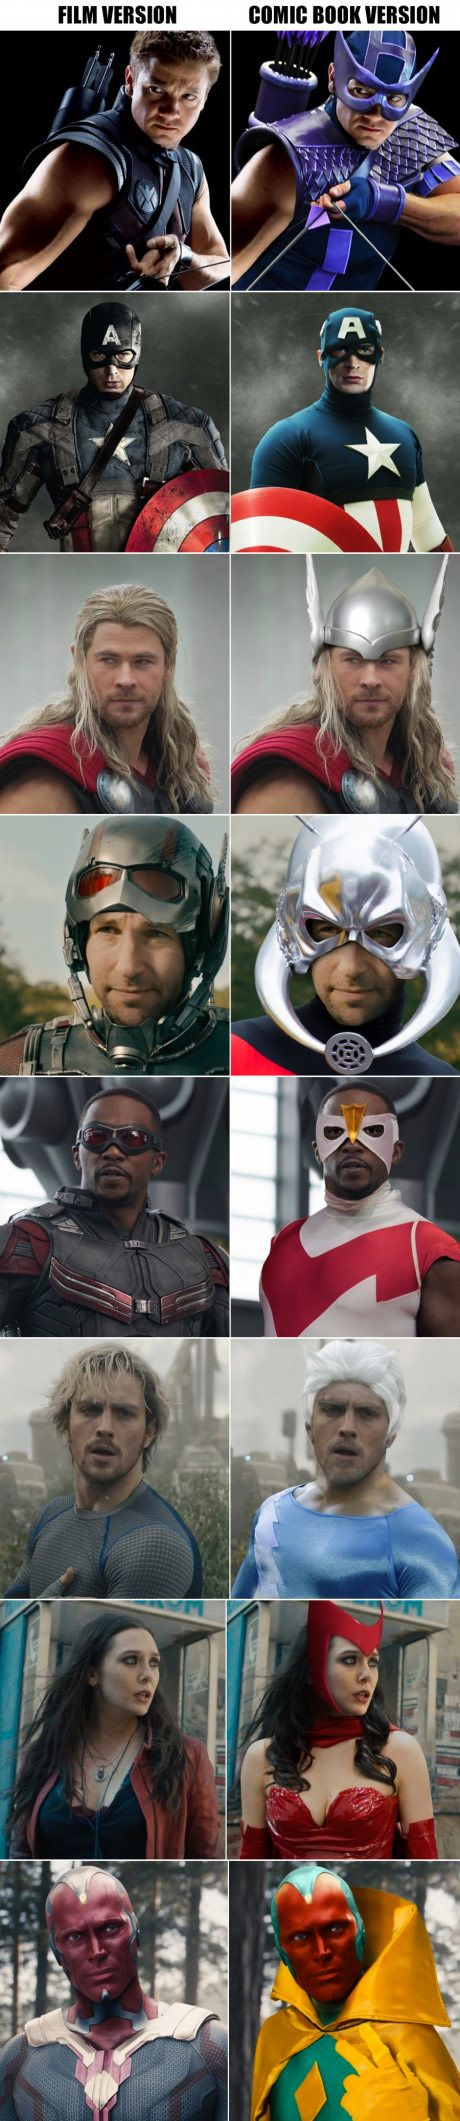 The real reason Marvel changed how the Avengers looked - from brightly-colored comic book glory to living and breathing characters